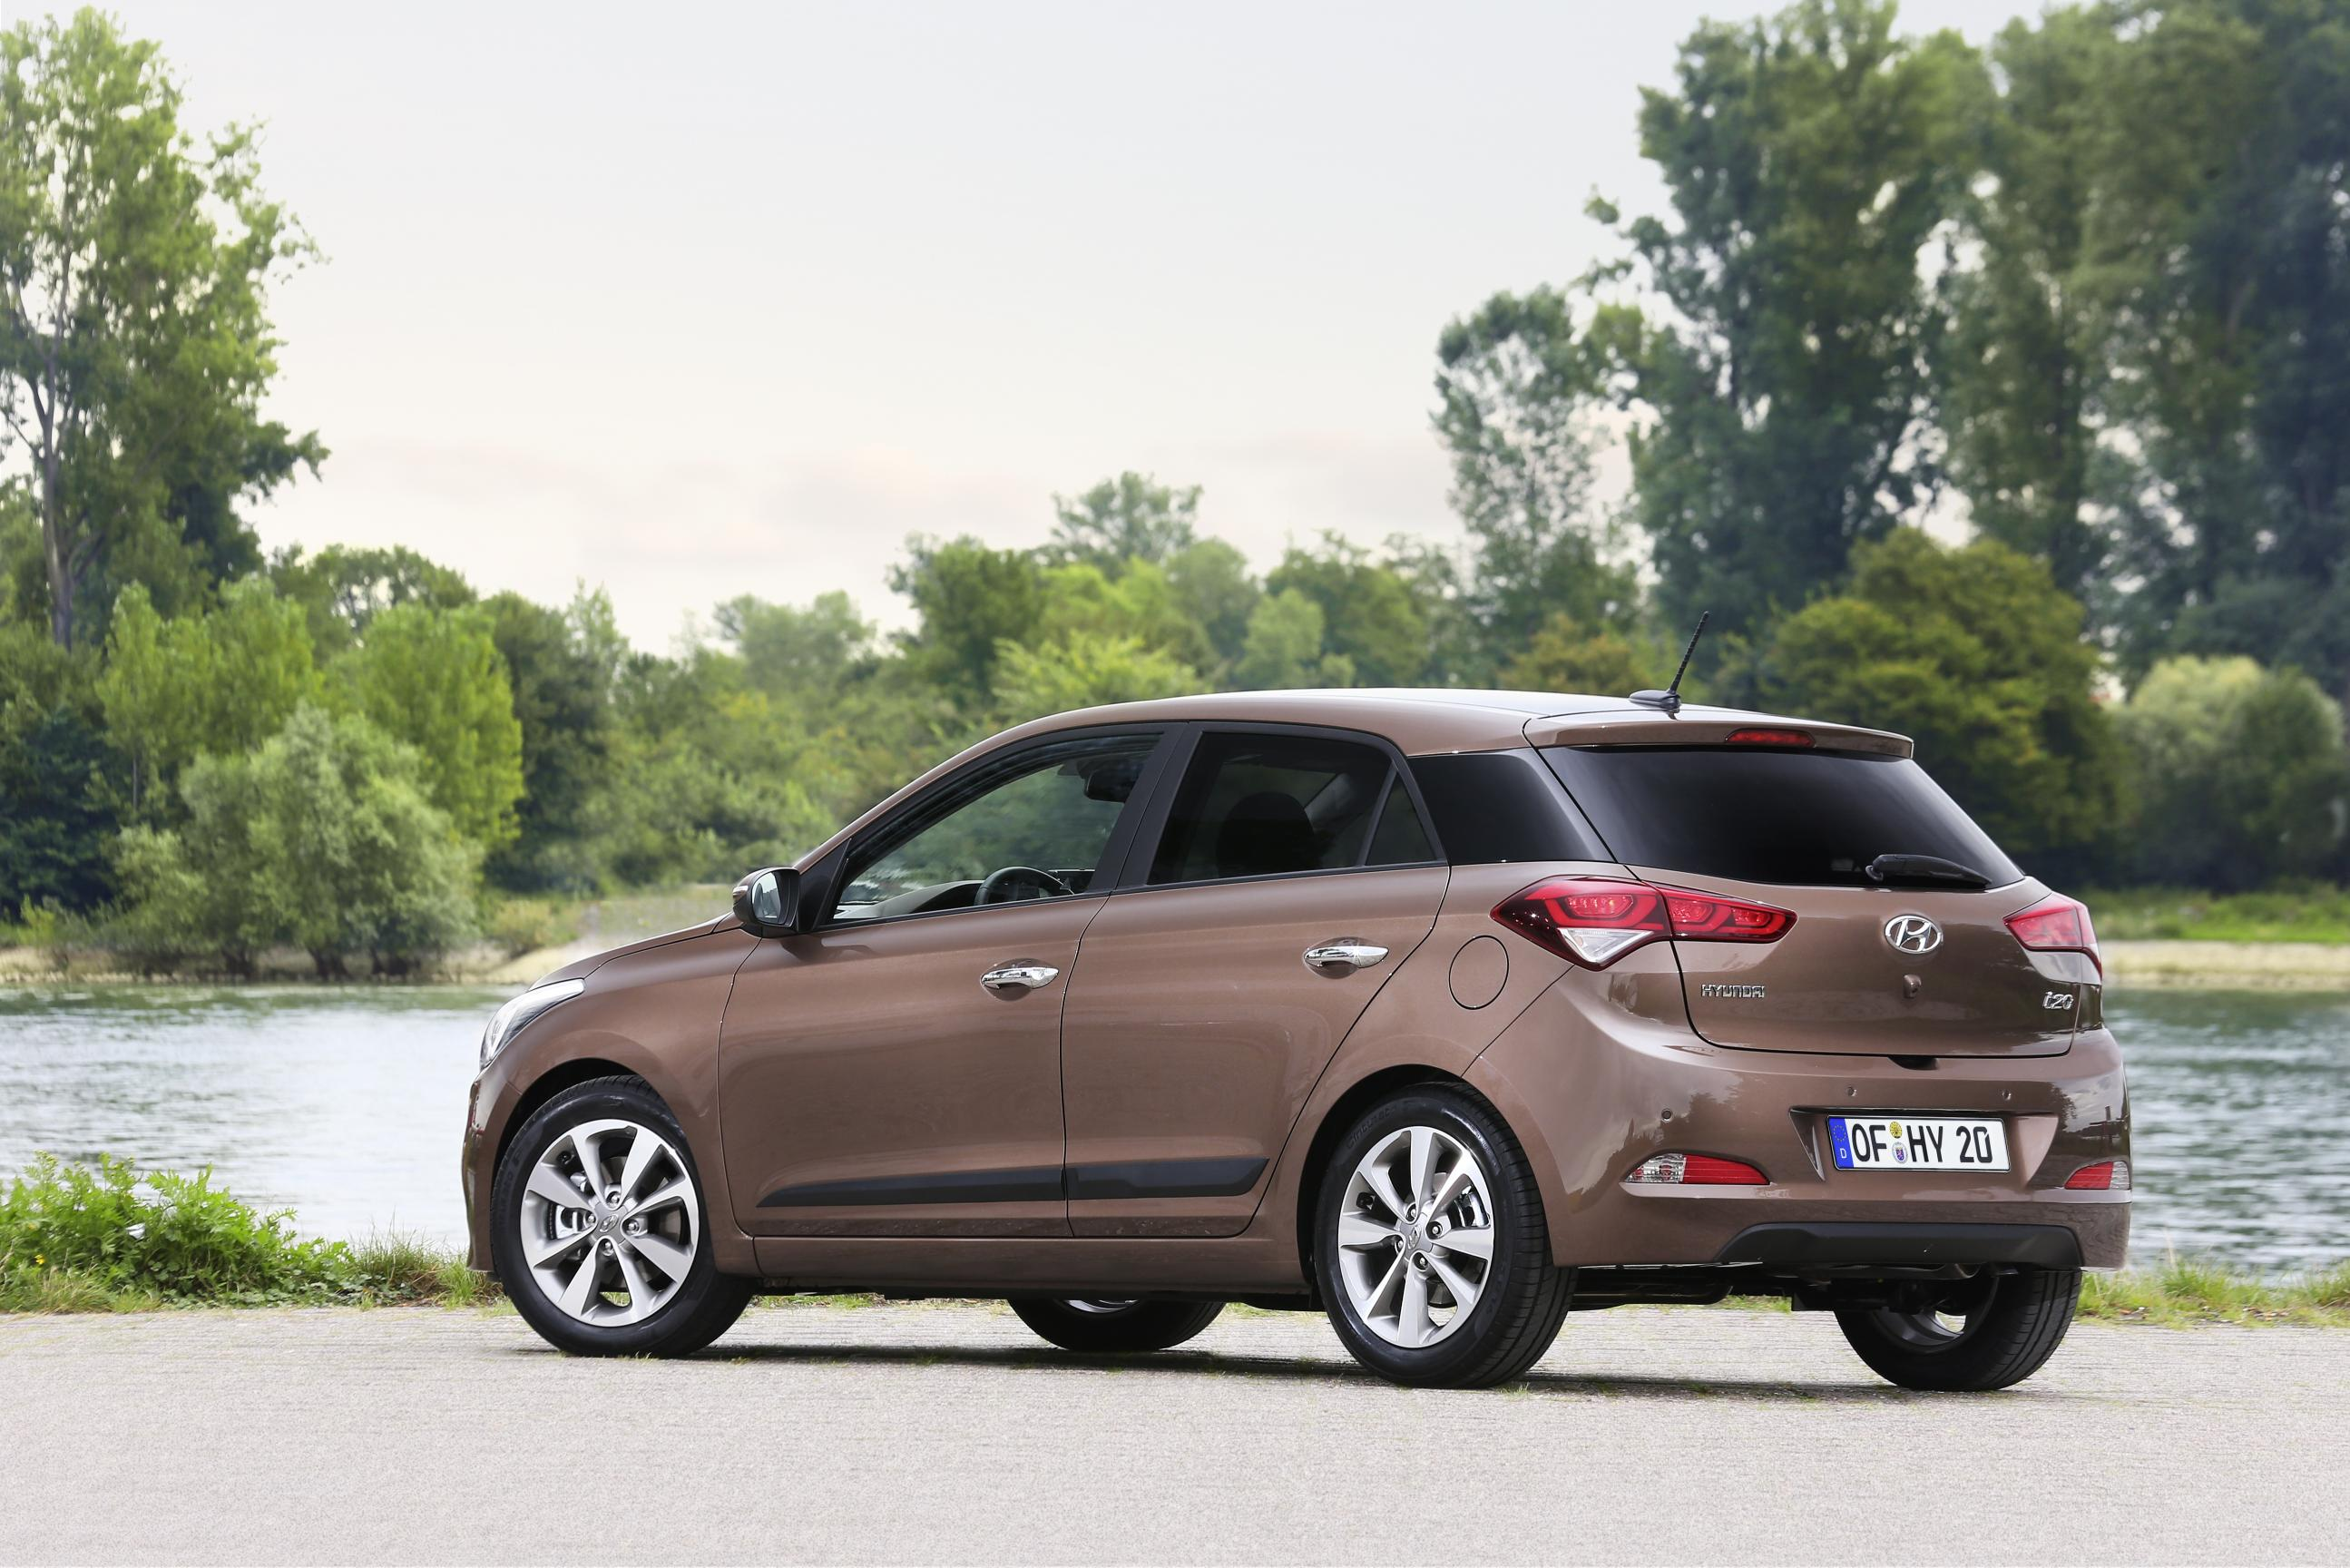 2015 hyundai i20 pricing announced for the united kingdom autoevolution. Black Bedroom Furniture Sets. Home Design Ideas